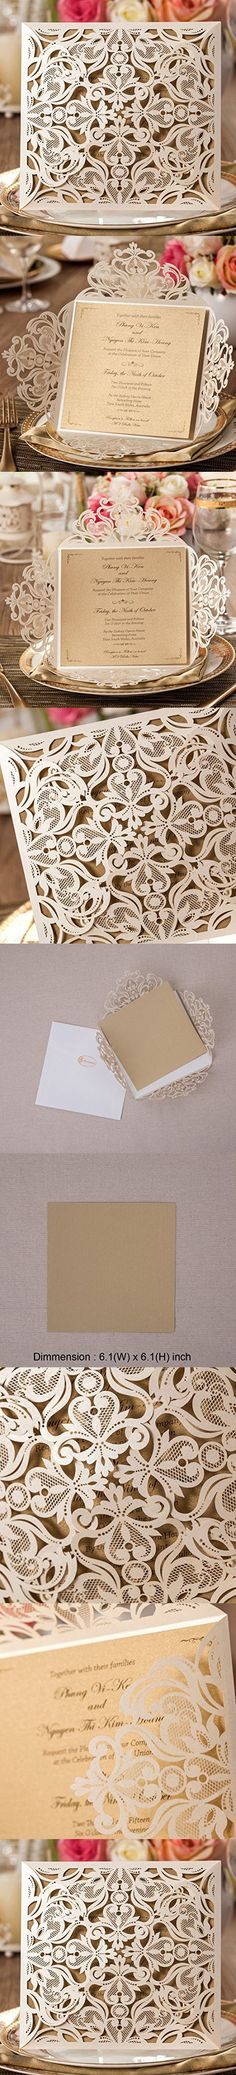 Wishmade 1 Piece Square White Lace Flower Pattern Laser Cut Wedding Invitations Kits Set With Cards for Birthday Bridal Shower Marriage Engagement Floral with Envelopes Seals Party Favors